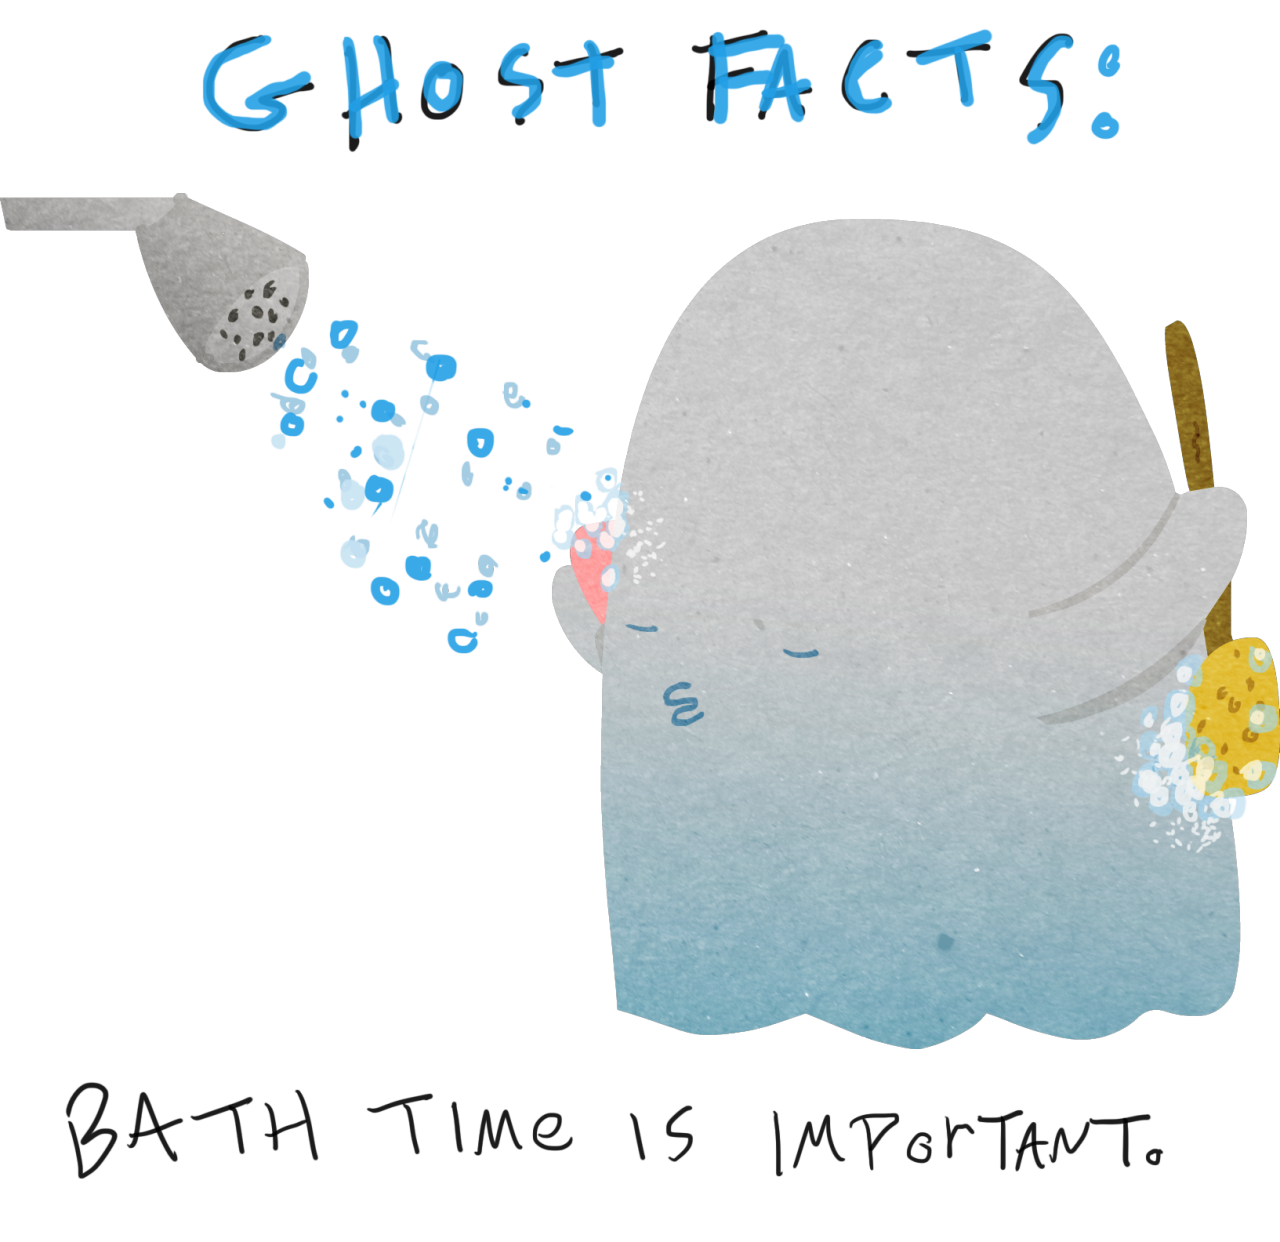 More important facts about ghosts. Who knew there was so much to learn?